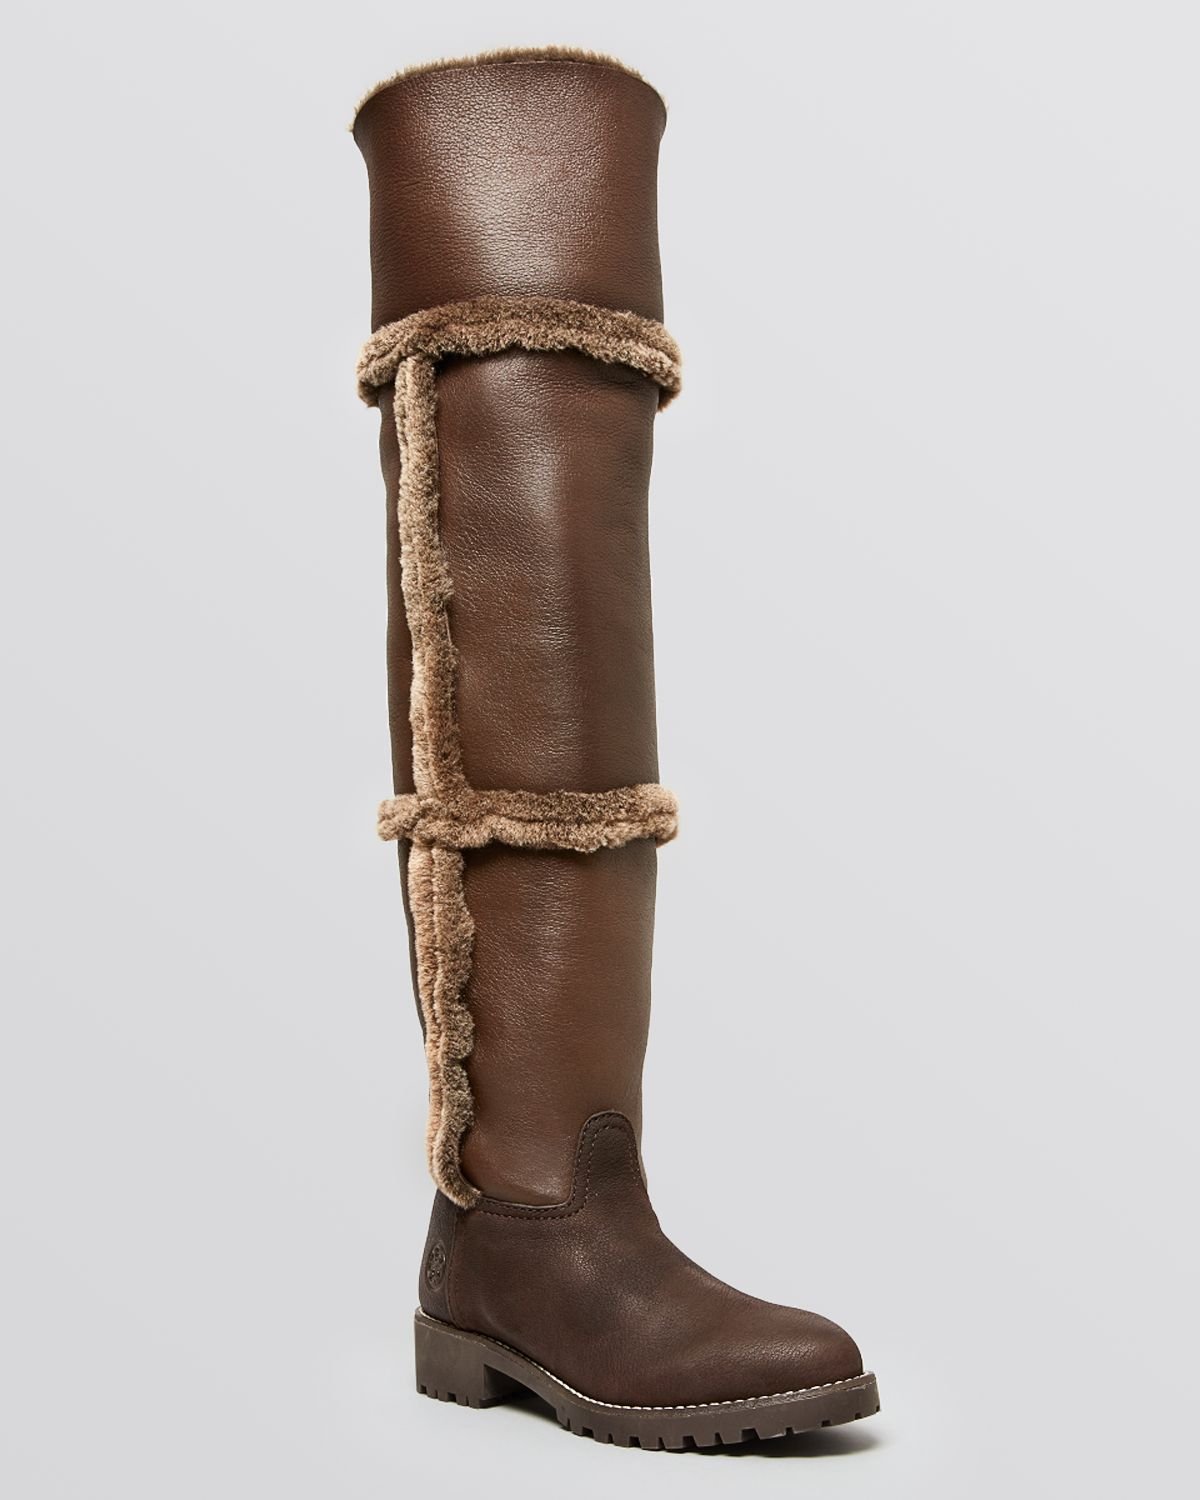 Tory Burch Suede Round-Toe Over-The-Knee Boots quality free shipping clearance geniue stockist latest collections with credit card sale online QnIwsv